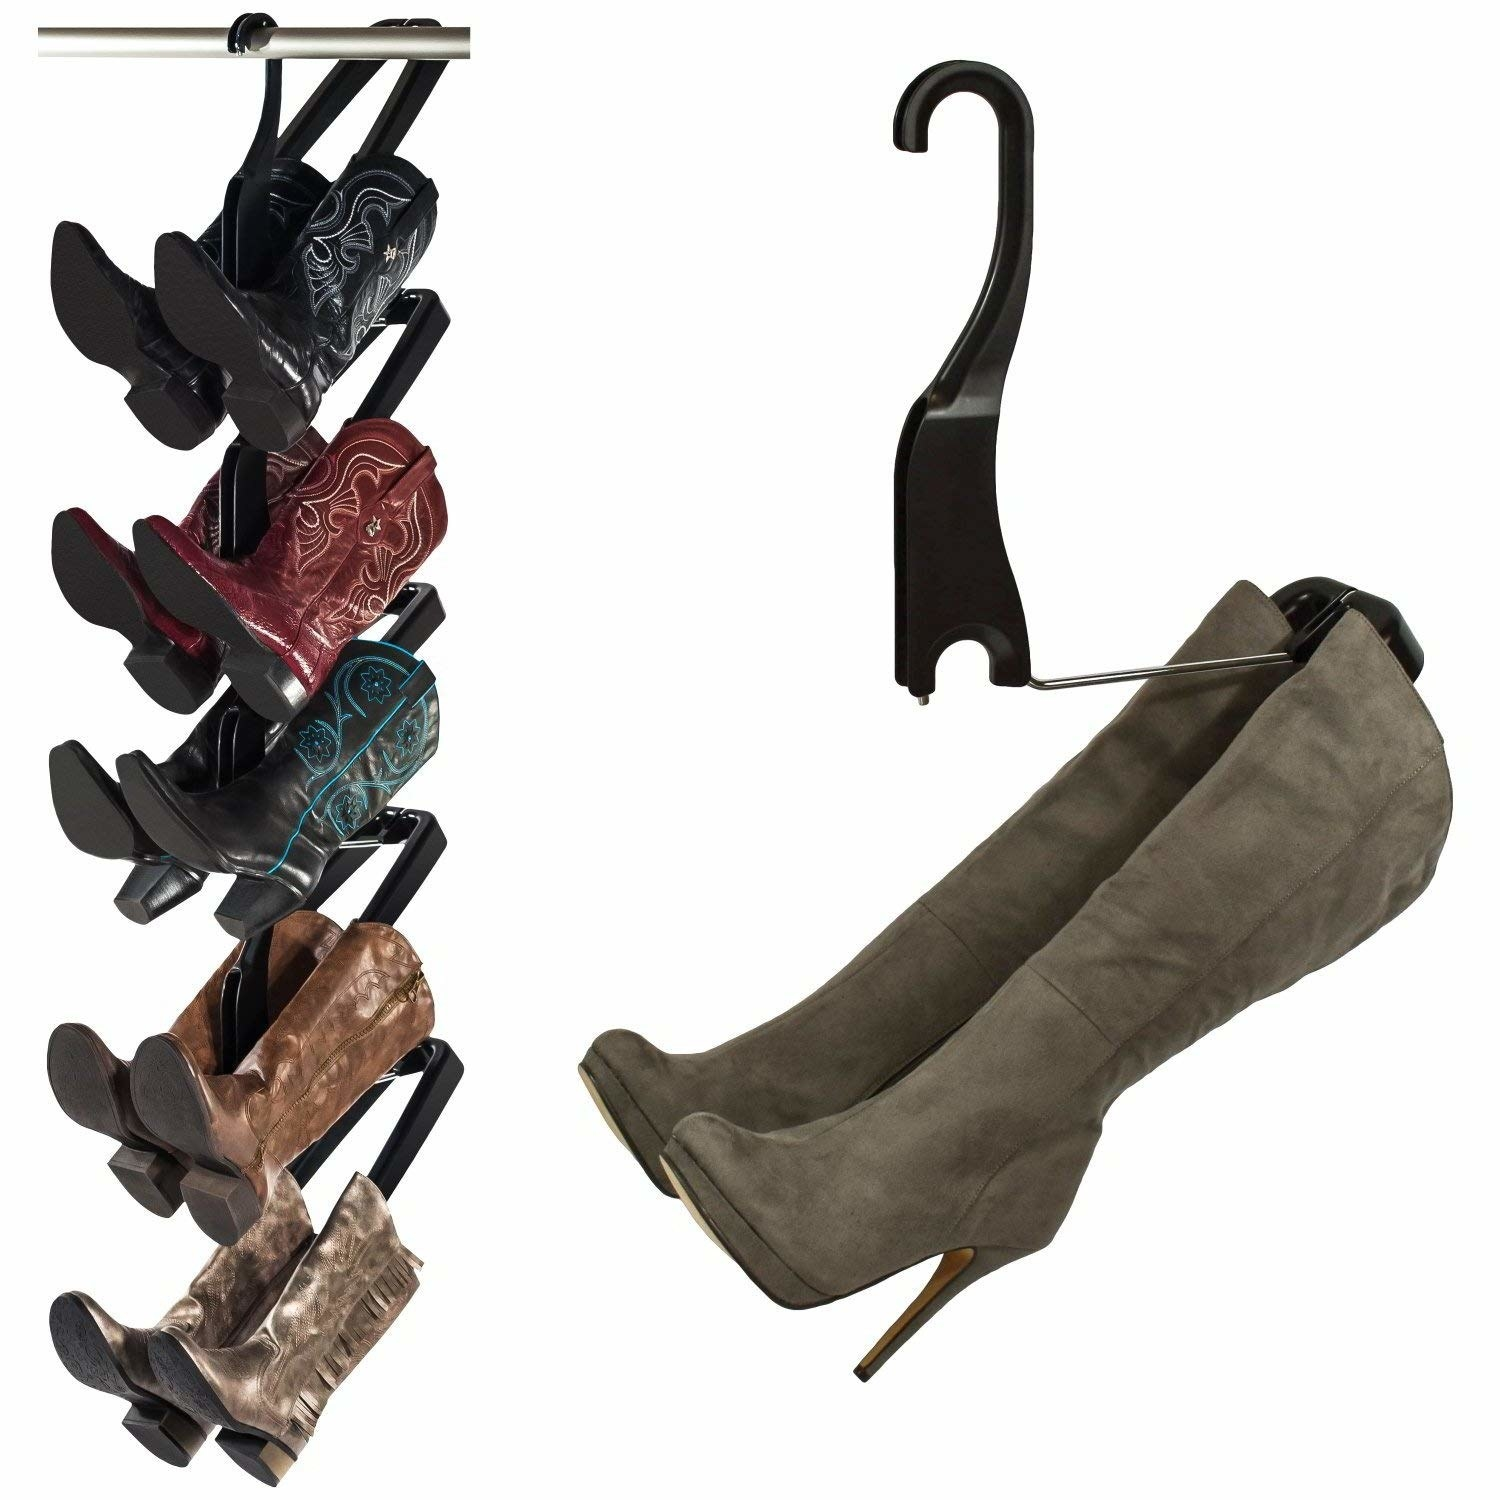 I thought I'd seen every possible shoe storage solution known to man until I came across this product in my research for this story on closet-organizing hacks. I've been in awe ever since.